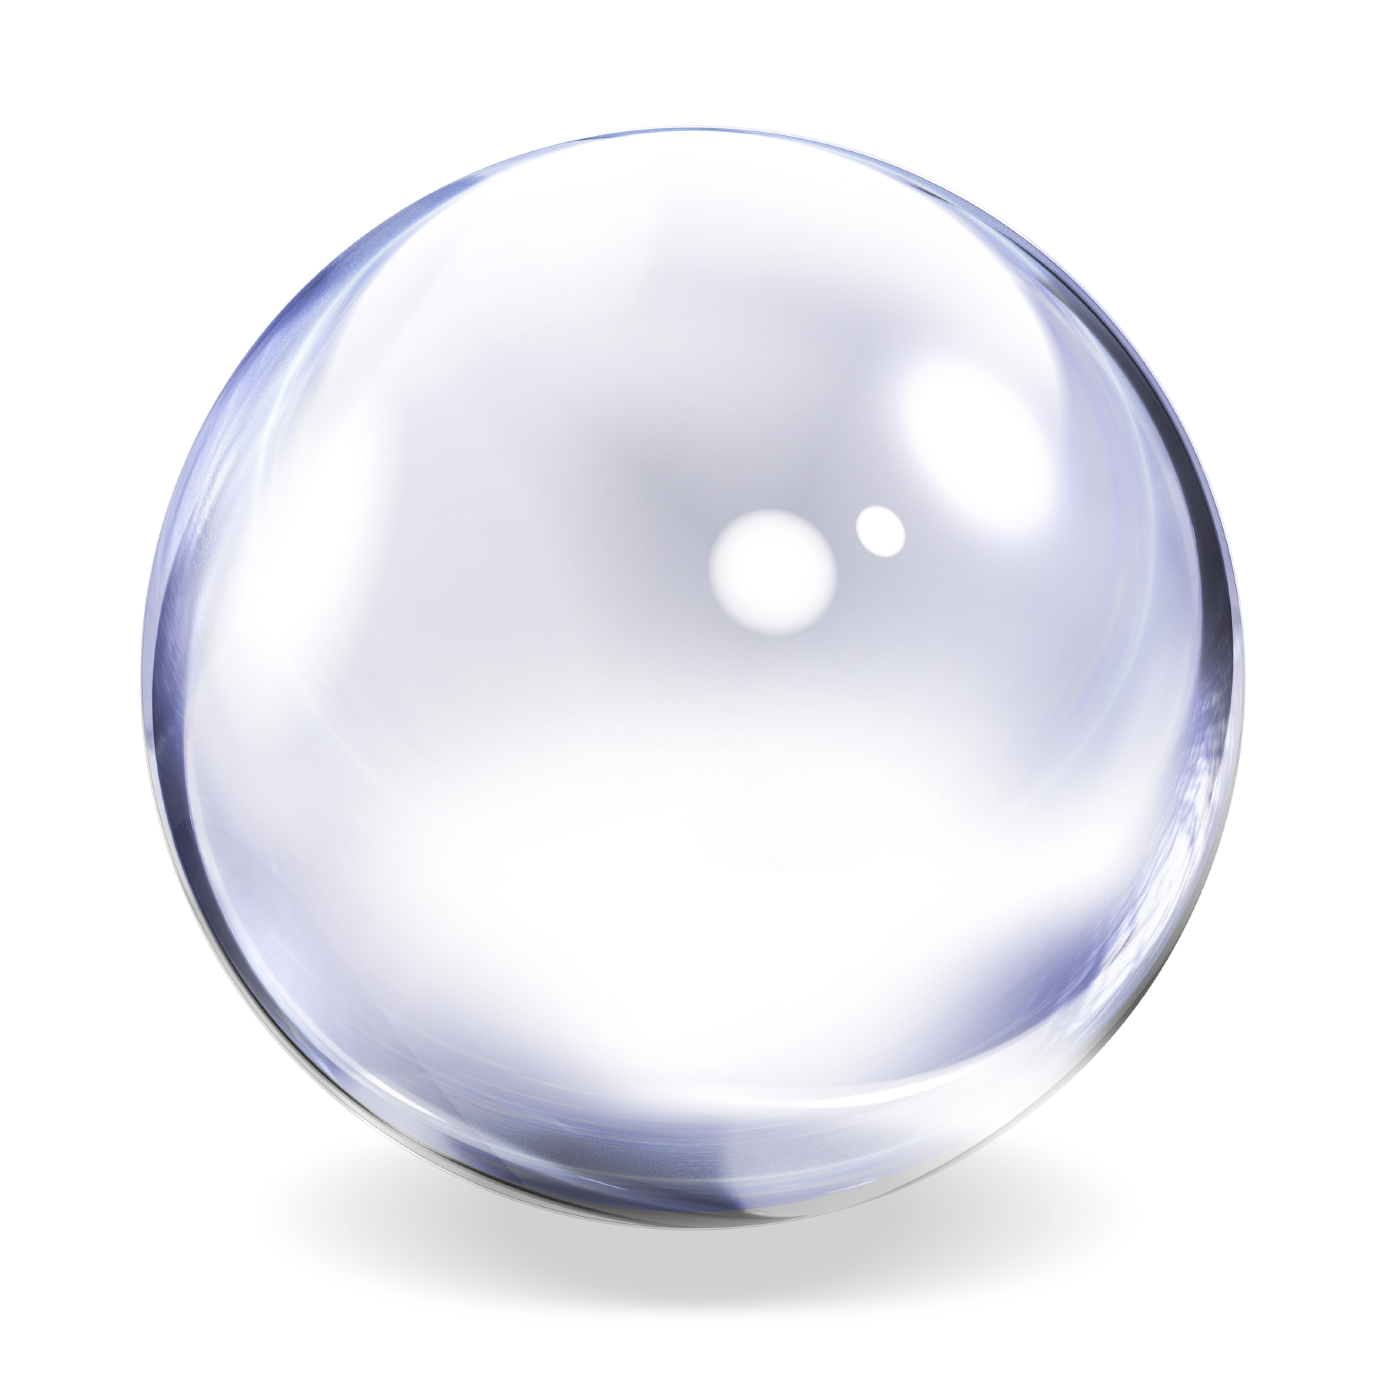 Bubble White Background High-Quality Image - Bubble PNG HD